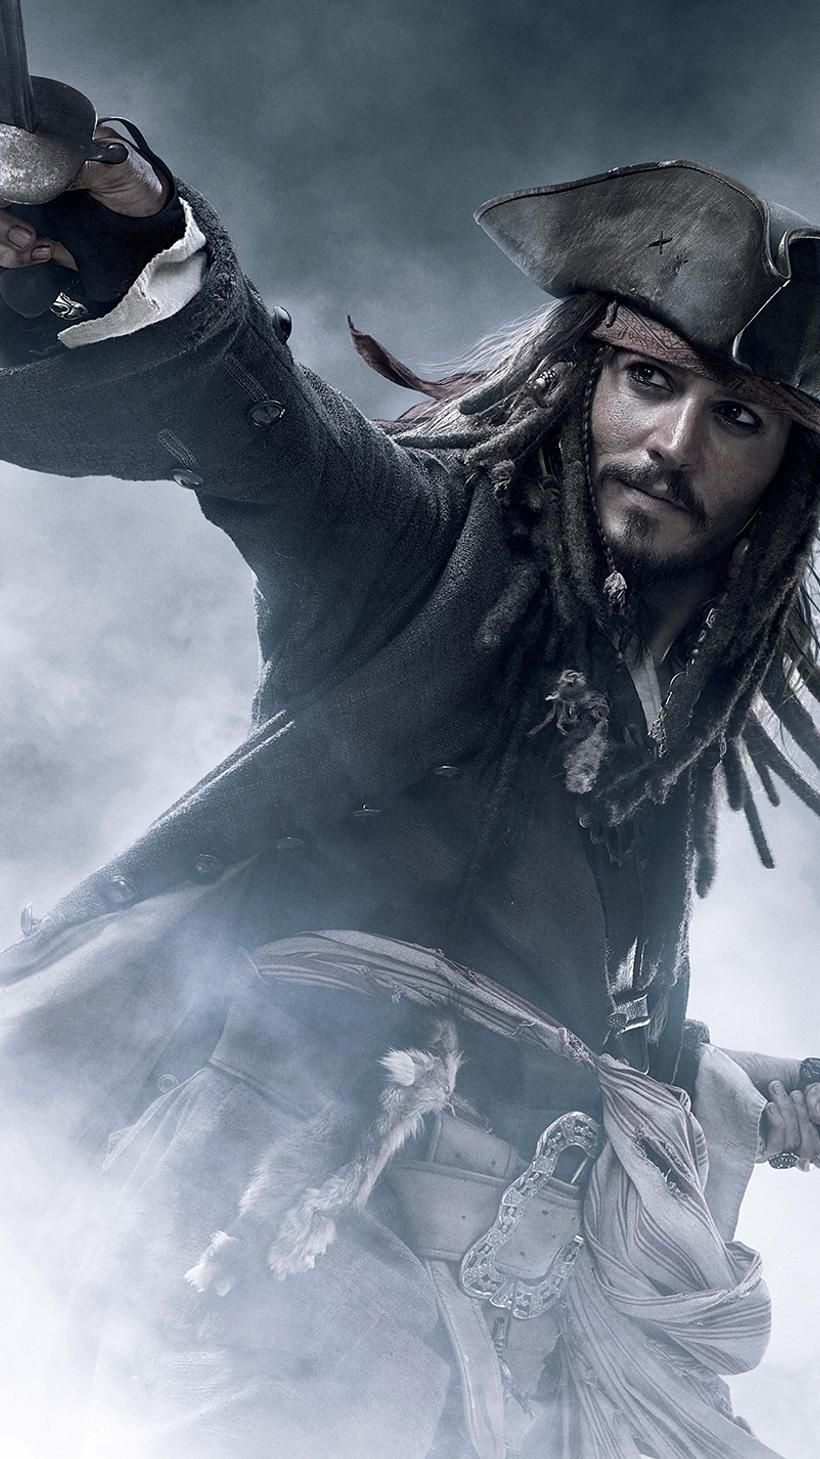 Moviemania Textless High Resolution Movie Wallpapers Jack Sparrow Wallpaper Pirates Of The Caribbean Captain Jack Sparrow